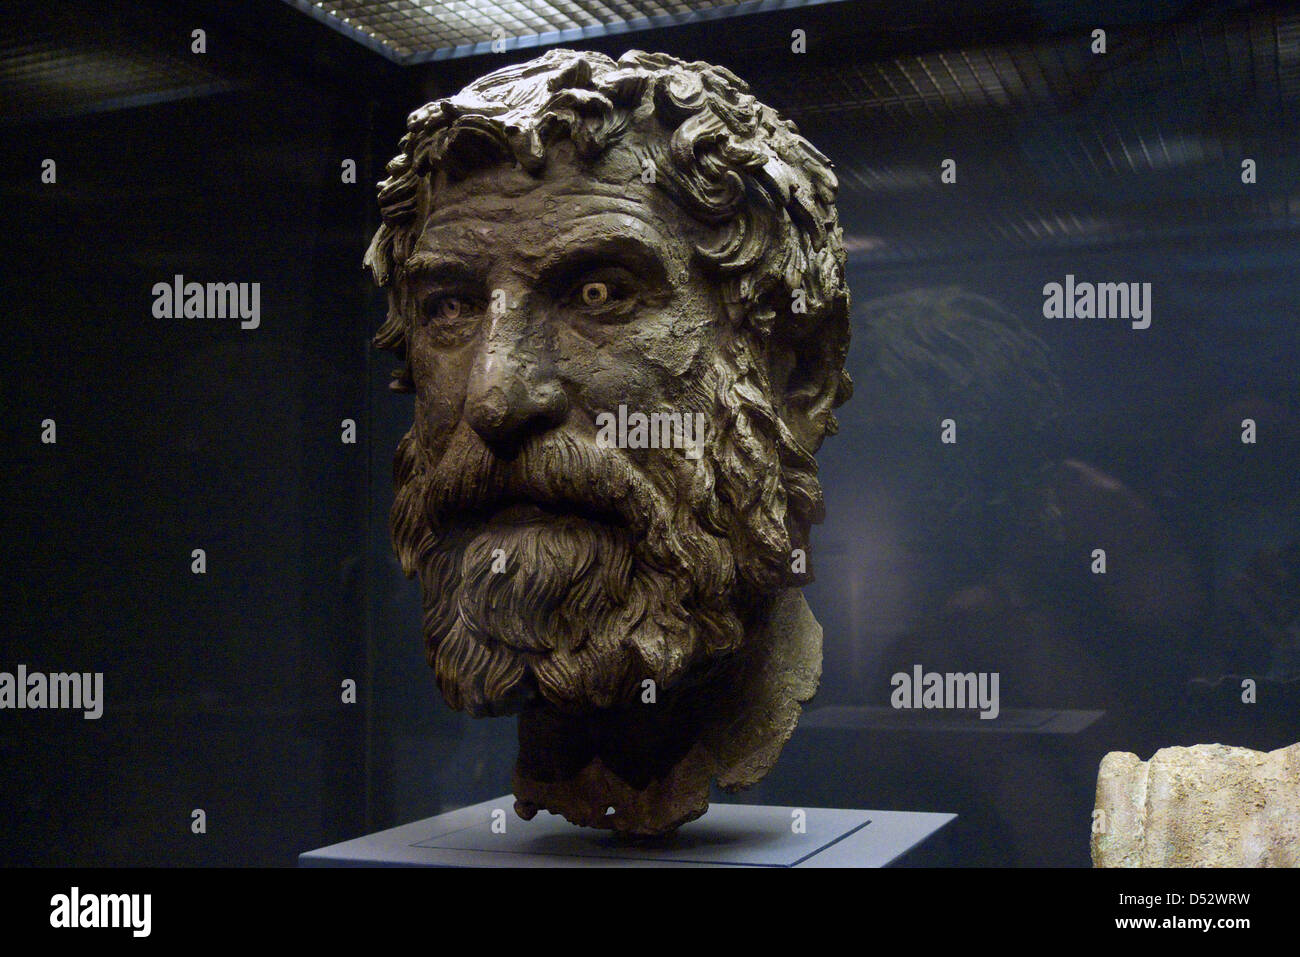 greece attica athens national archaeological museum the antikythera shipwreck exhibition the head of a philosopher - Stock Image